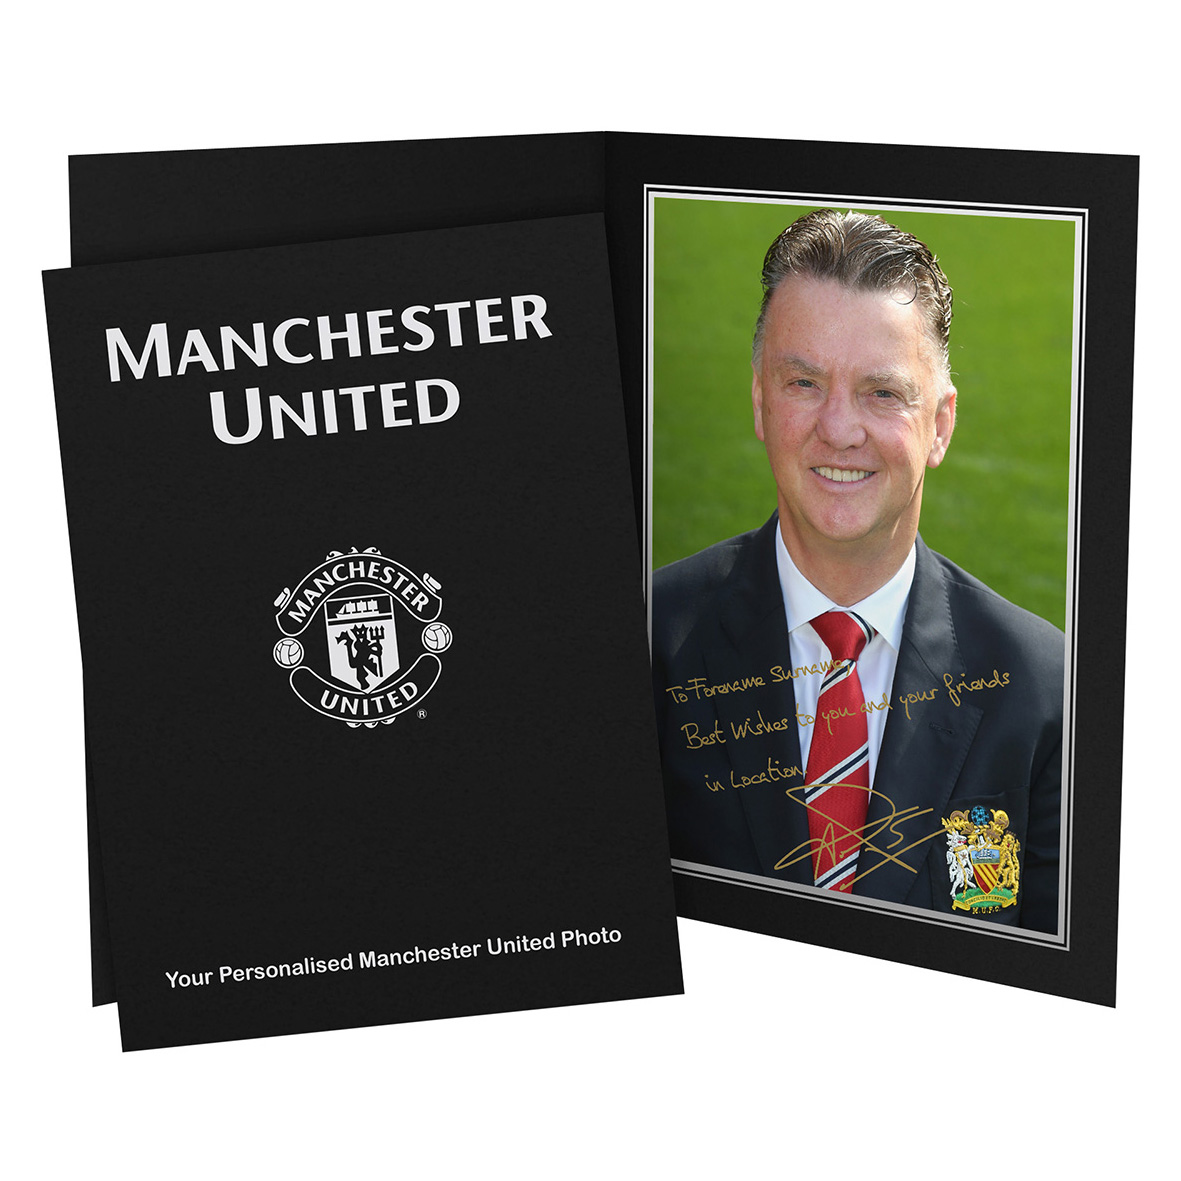 Manchester United Personalised Signature Photo in Presentation Folder - Van Gaal